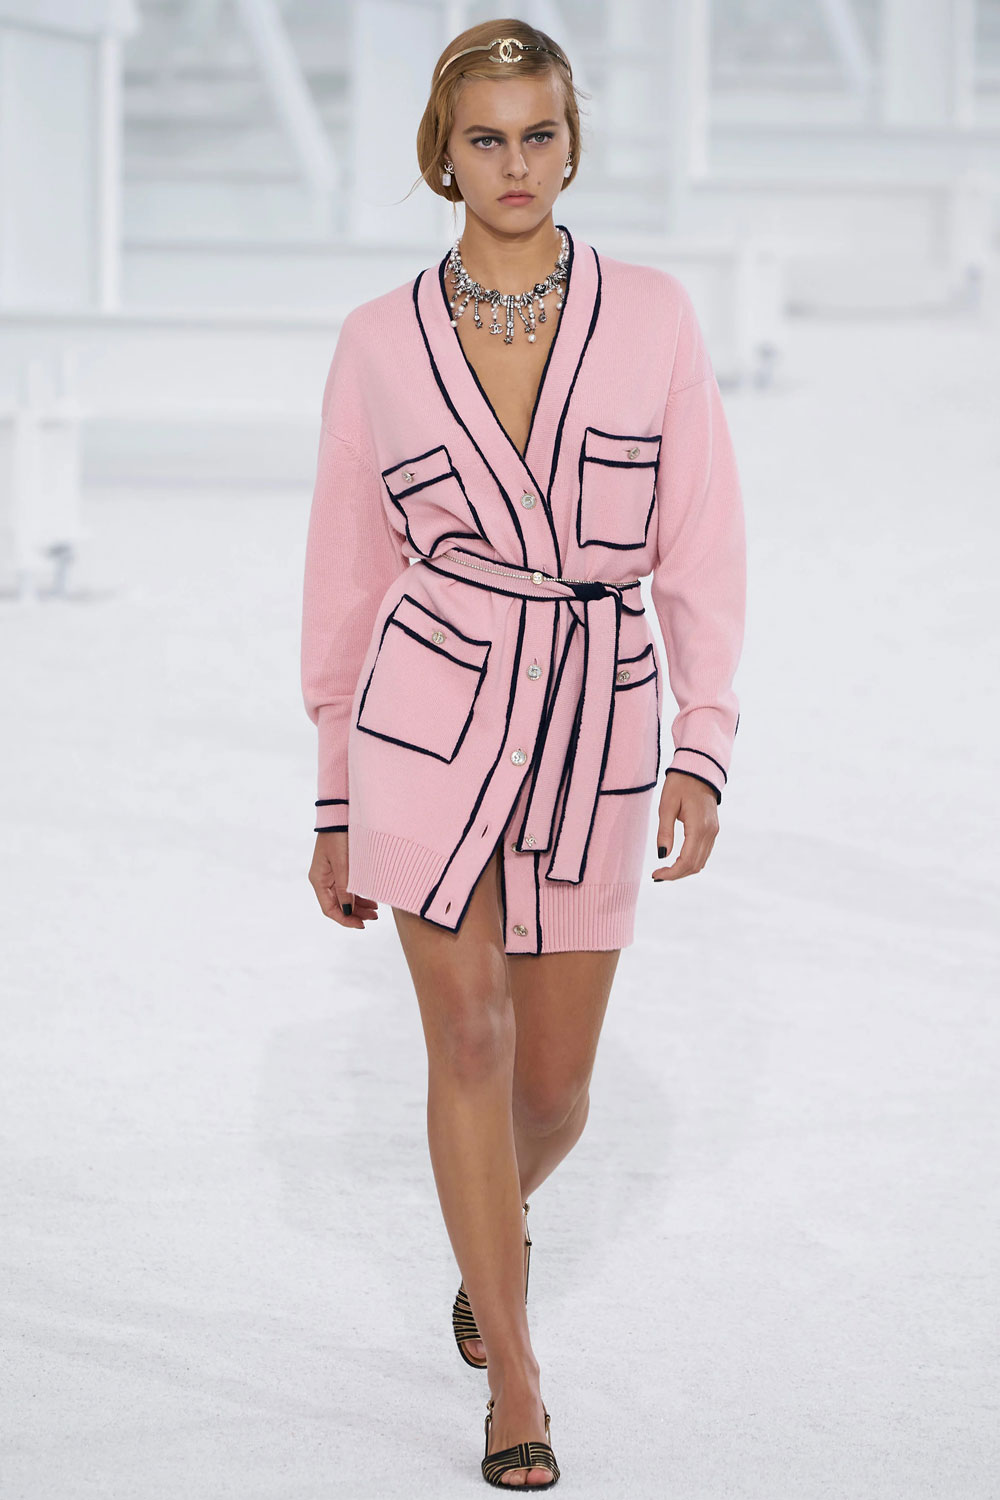 fashion_week_spring_2021_ready-to-wear_chanel_3